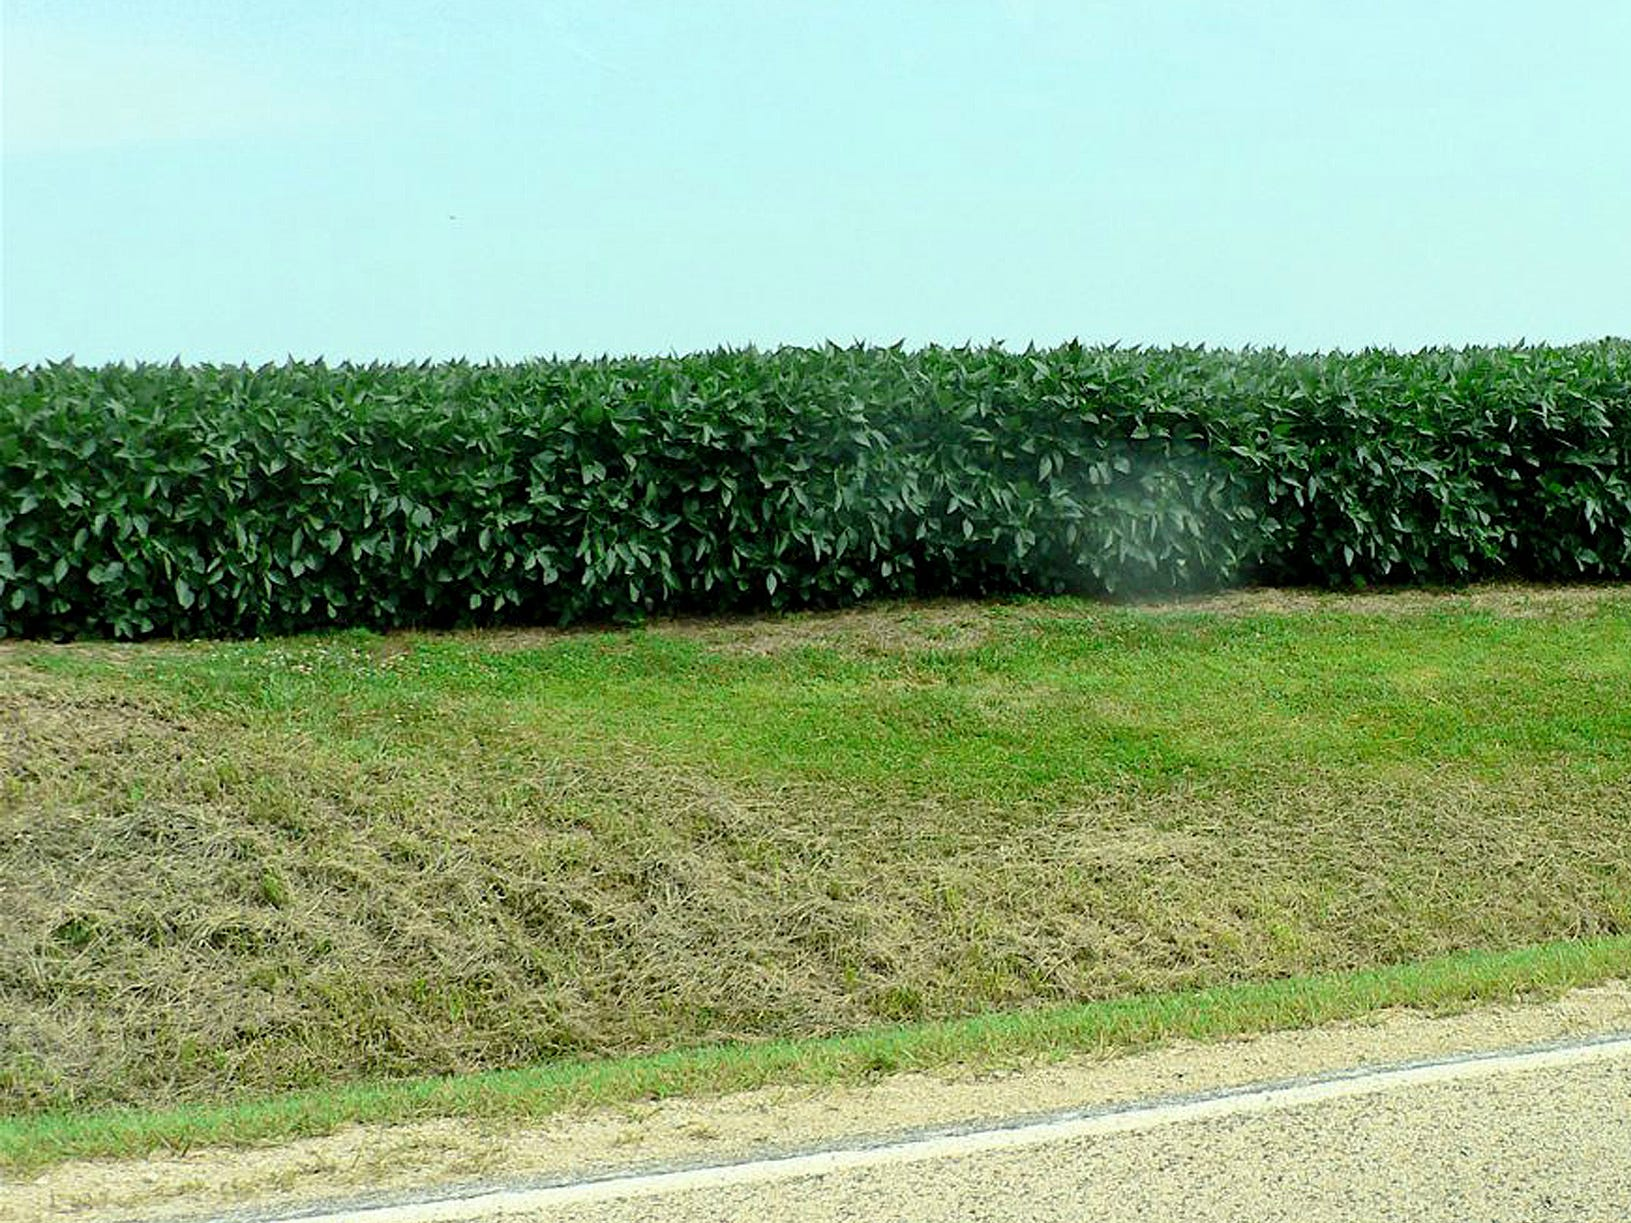 Soybeans are tall and still growing.